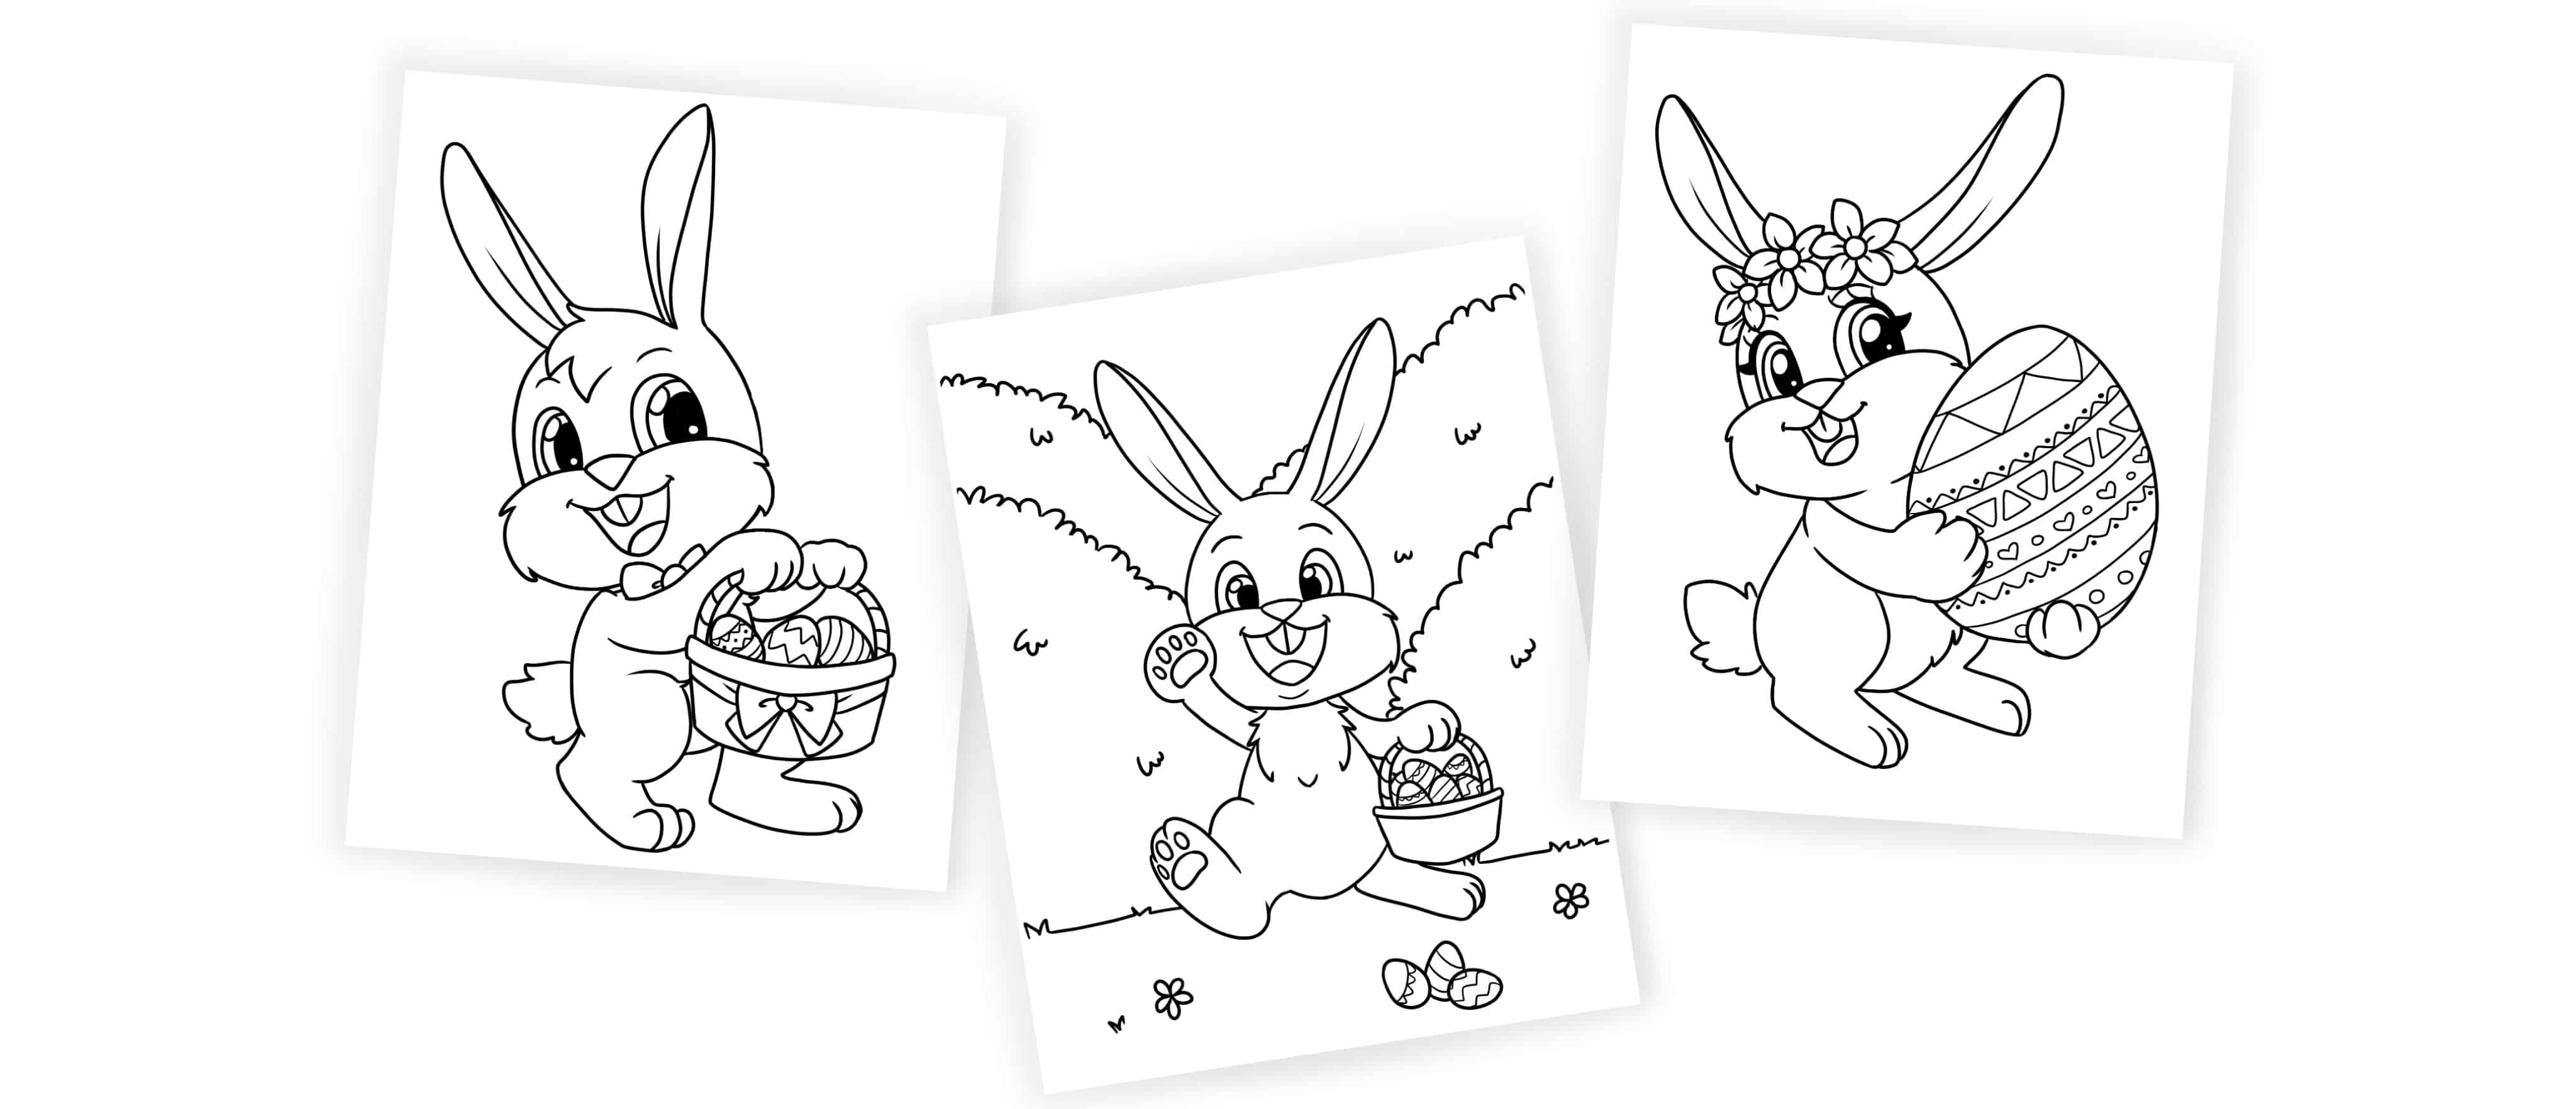 Once colored free printable Easter bunny coloring pages will make adorable DIY Easter décor.